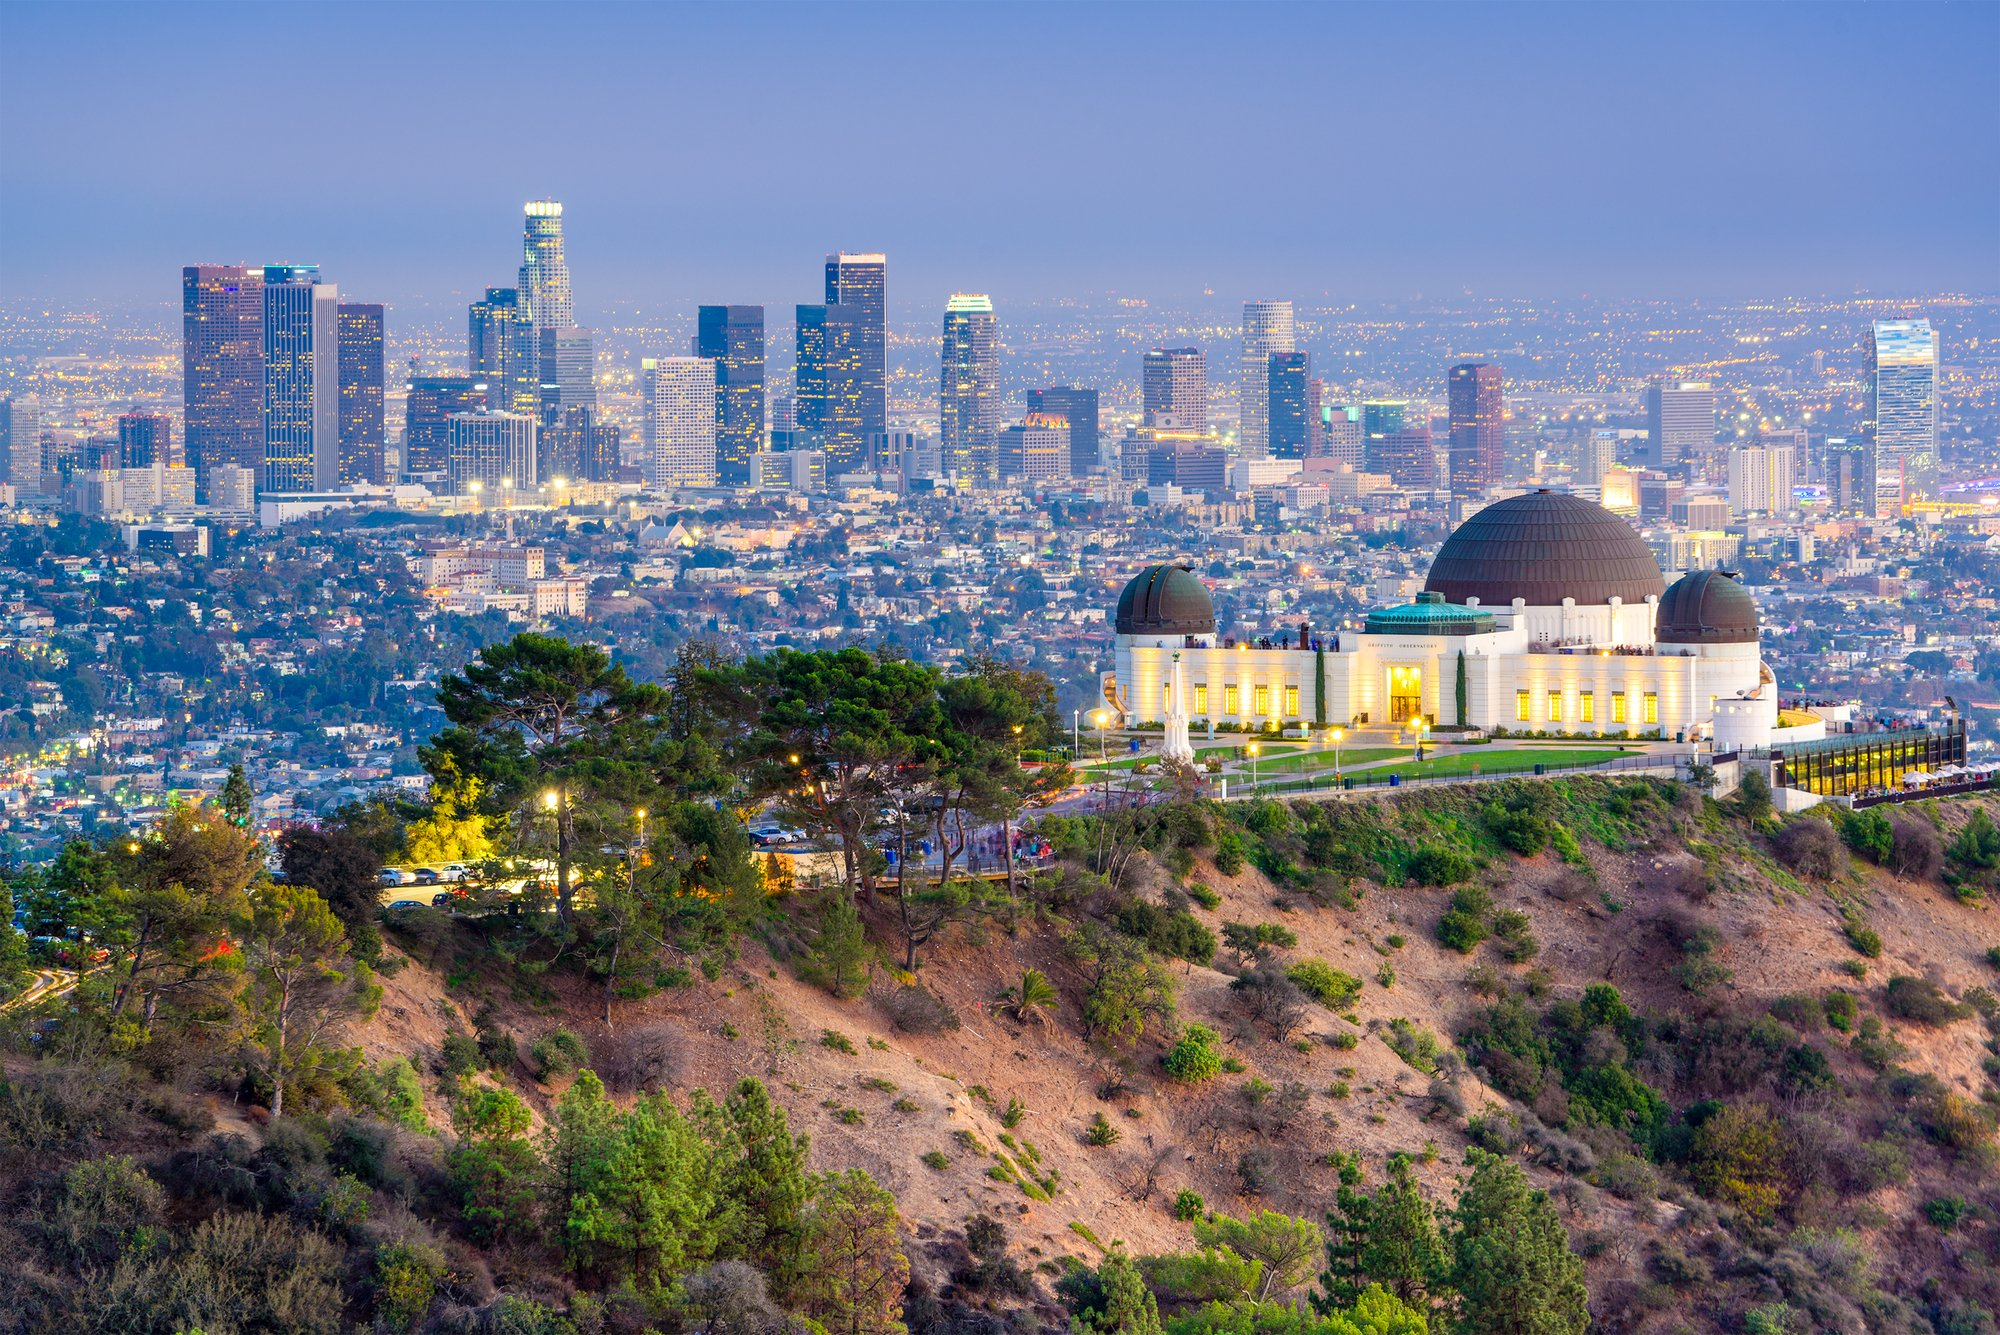 Griffith Park and the Griffith Observatory L.A. skyline view